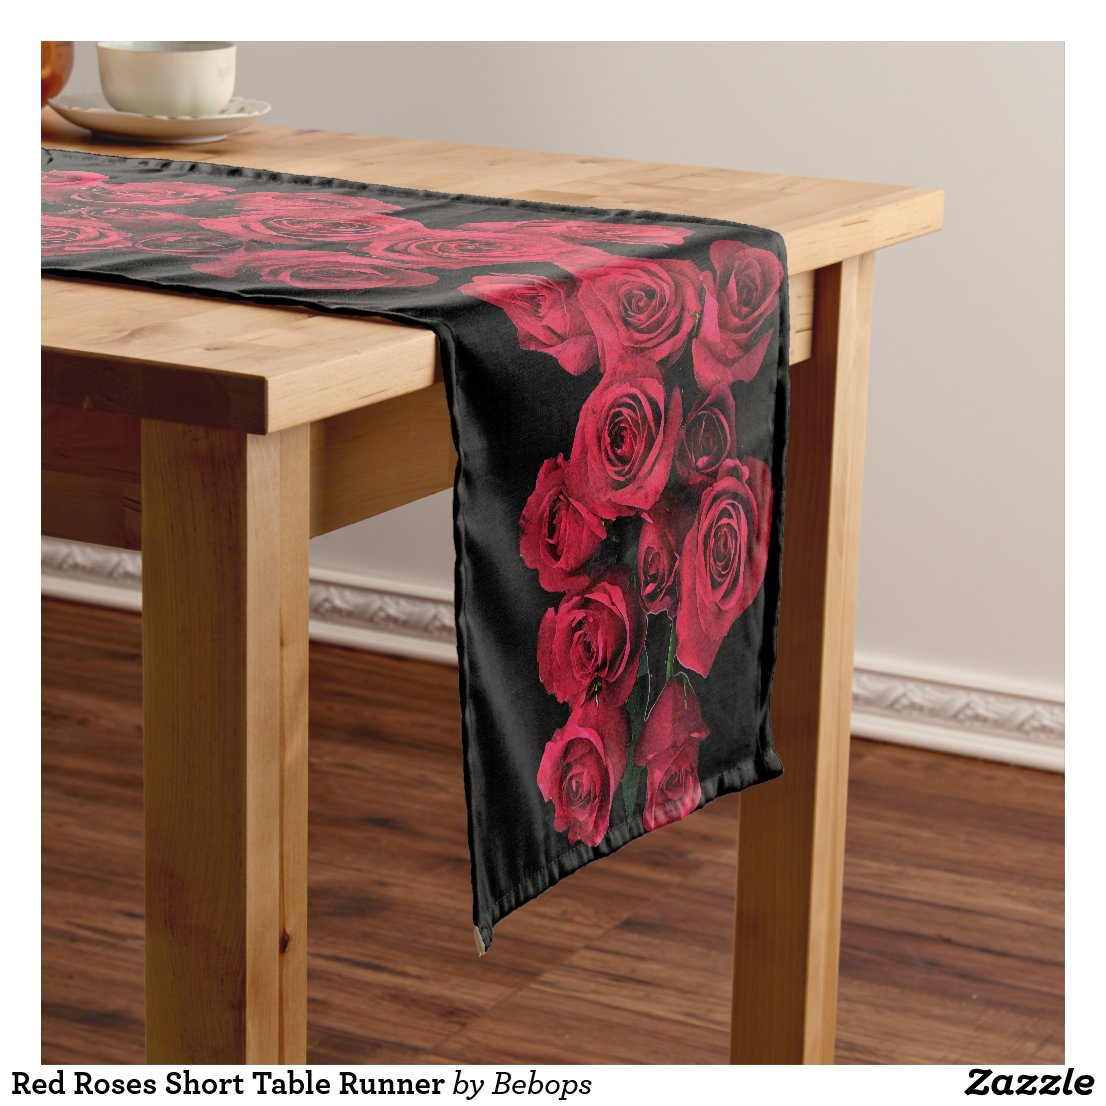 Red Roses Short Table Runner